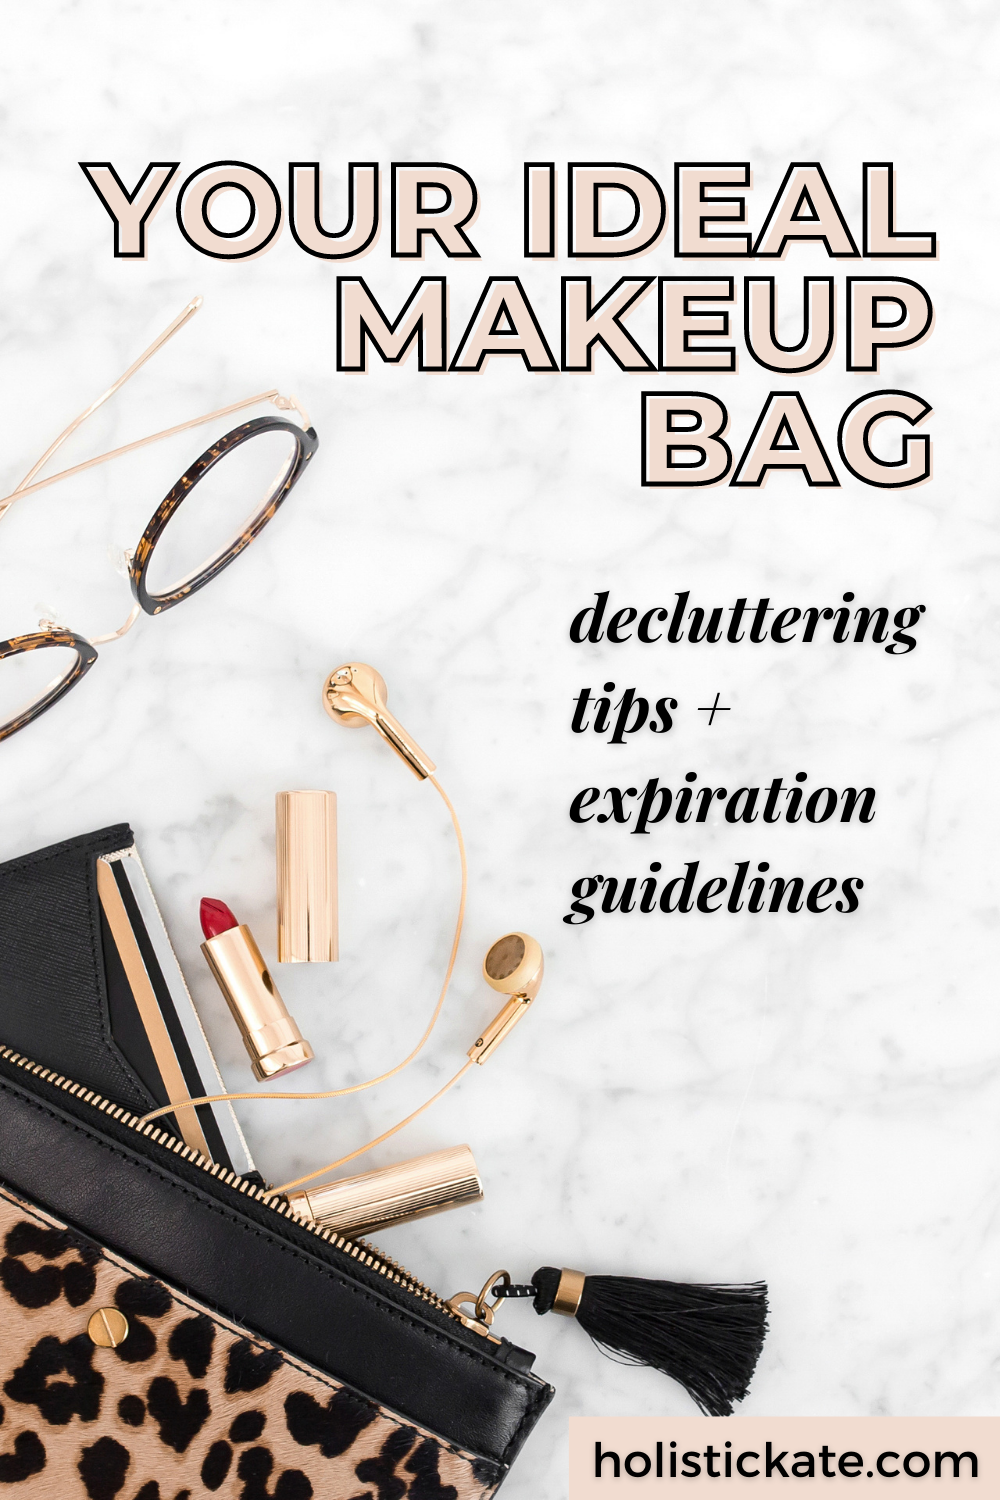 Your ideal makeup bag: decluttering tips and expiration guidelines for makeup